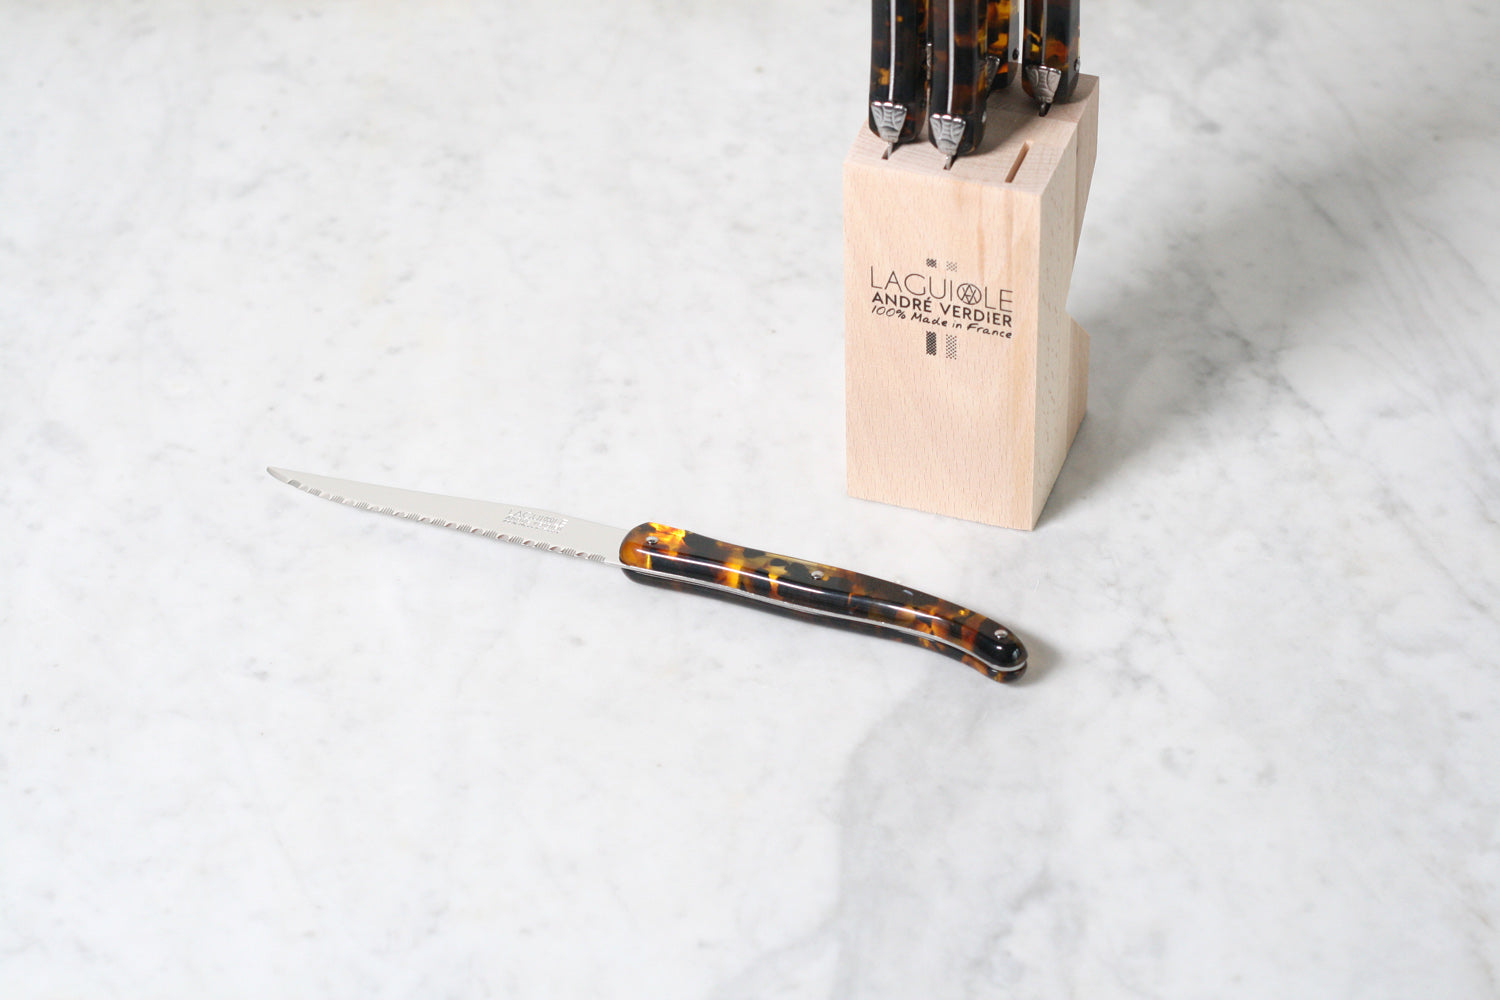 Tortoise Laguiole Steak Knives